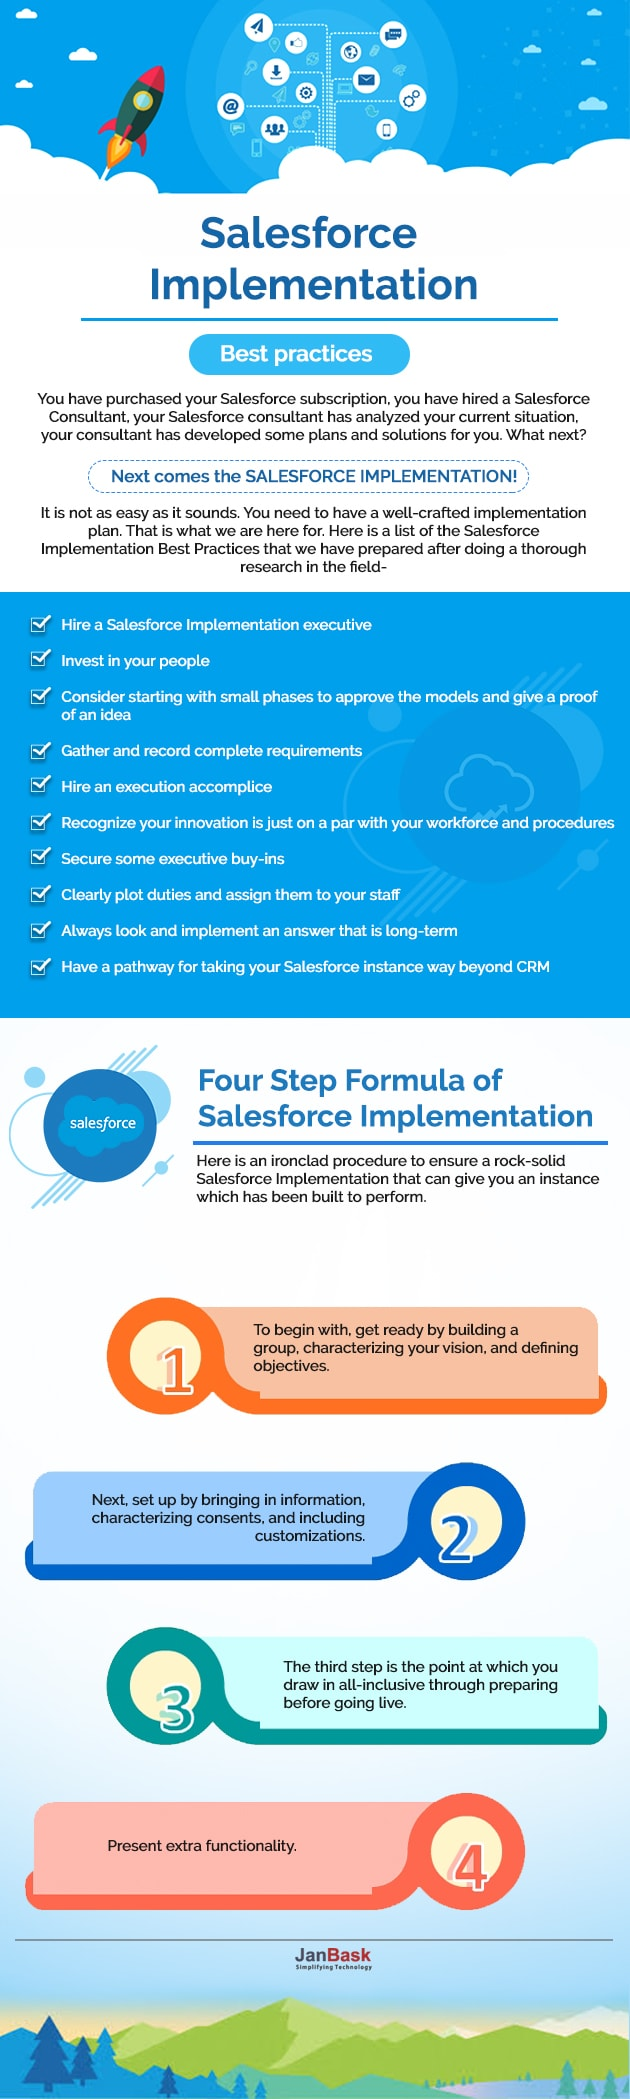 Infographic Salesforce Implementation- Best practices